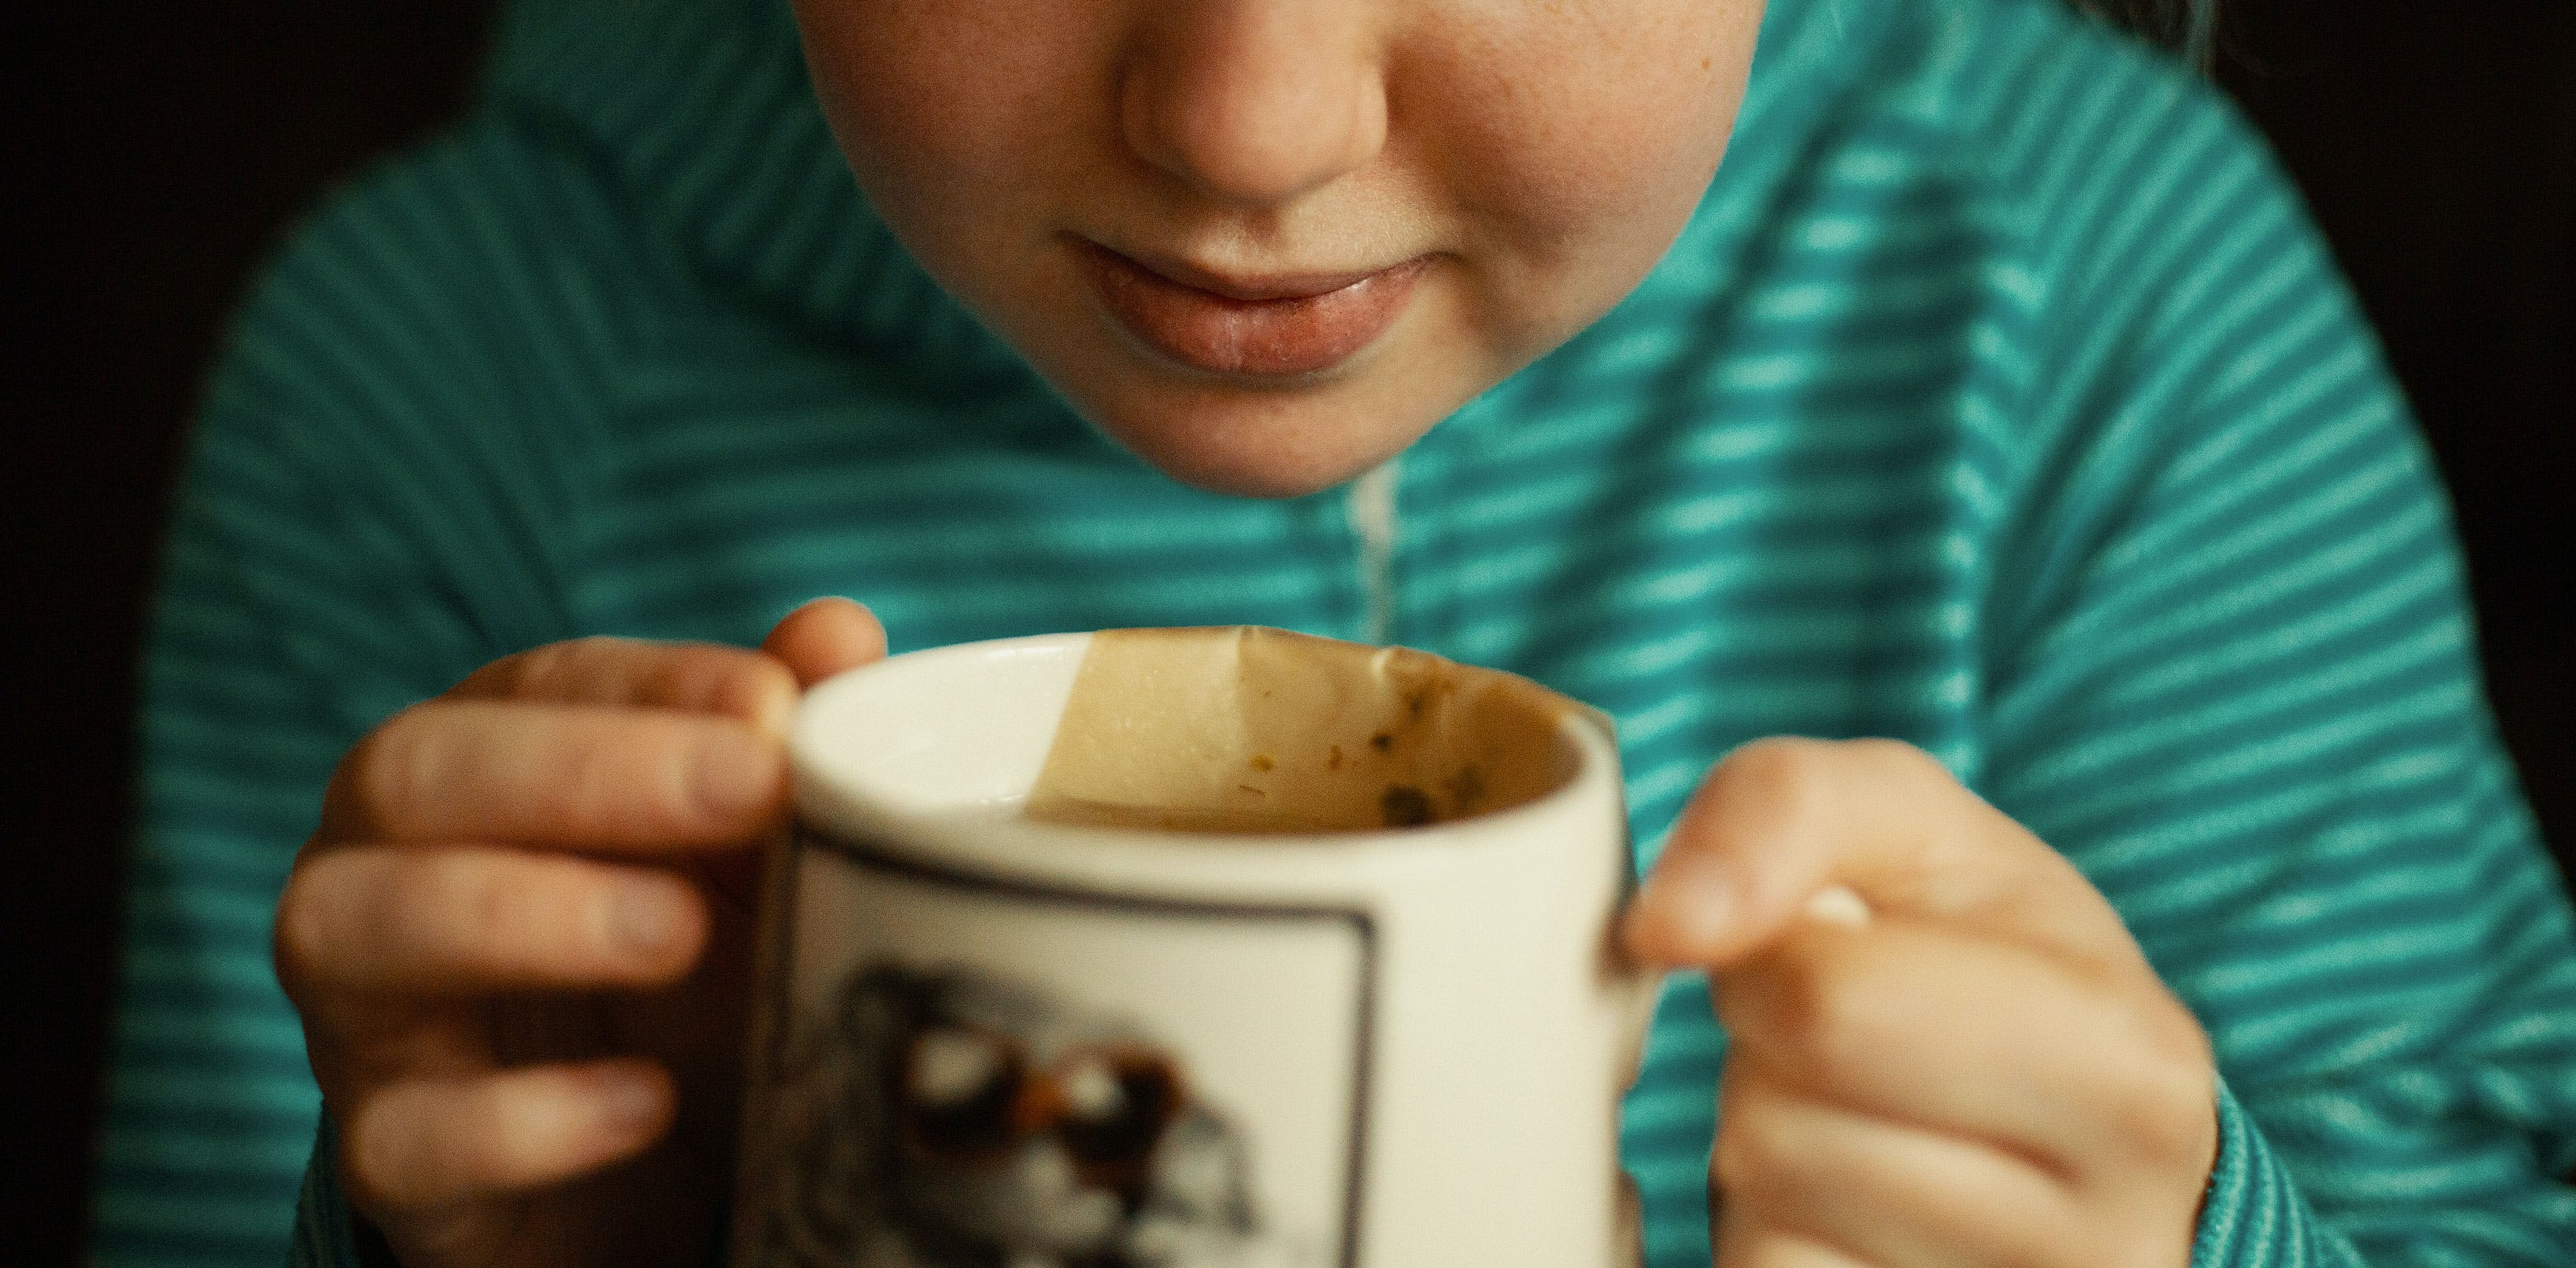 Someone drinks from a tea cup, which can be a good way to avoid smoking weed and being sick